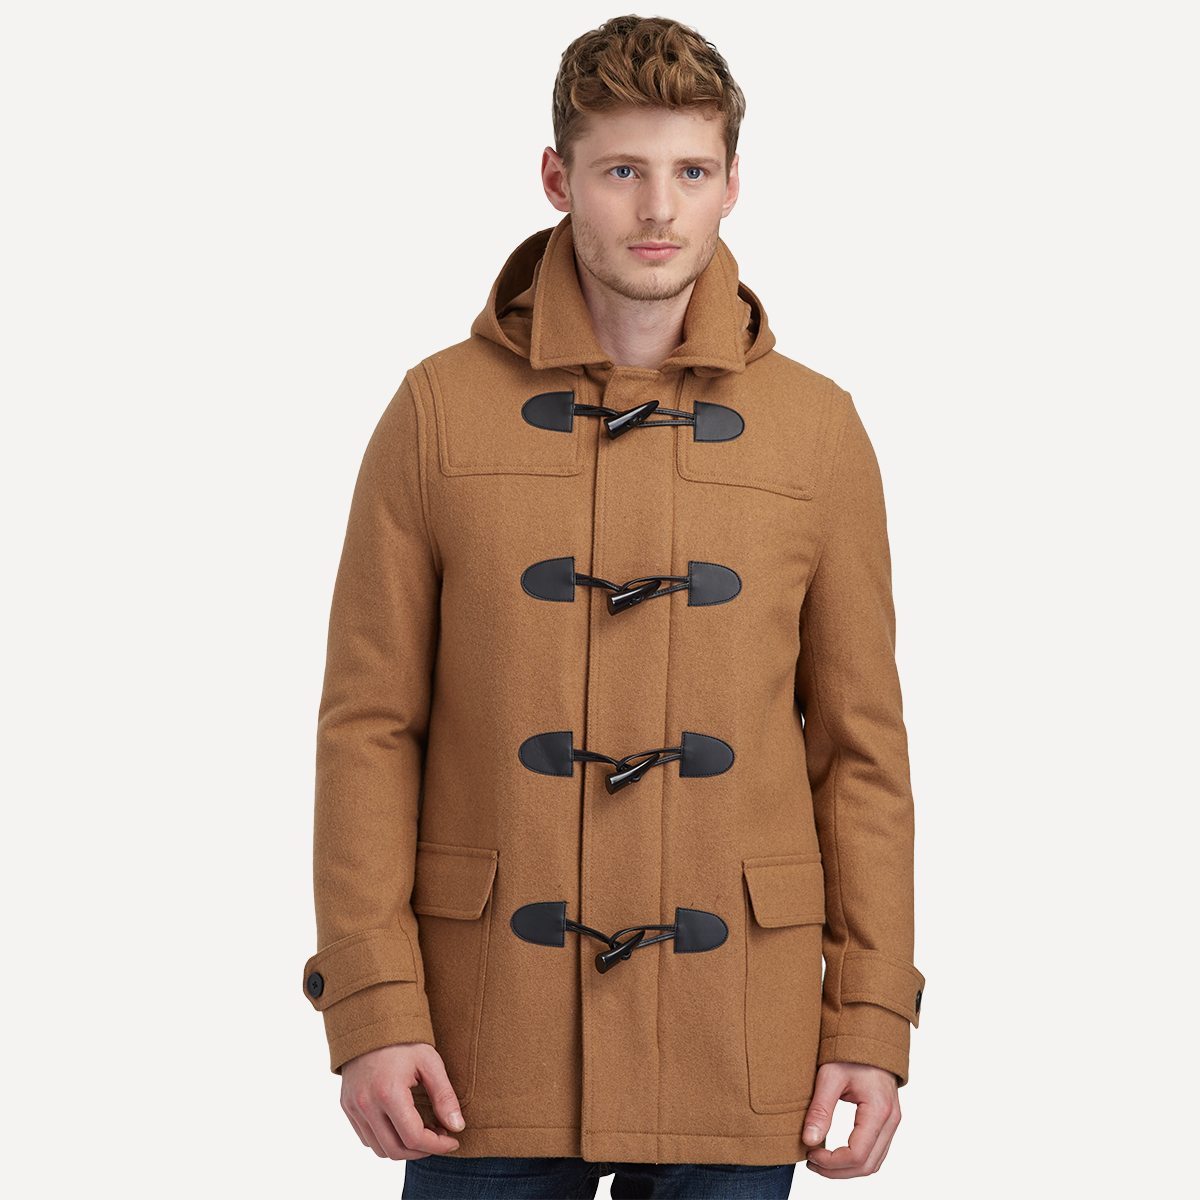 Wool Quilted Toggle Coat - Mensfash